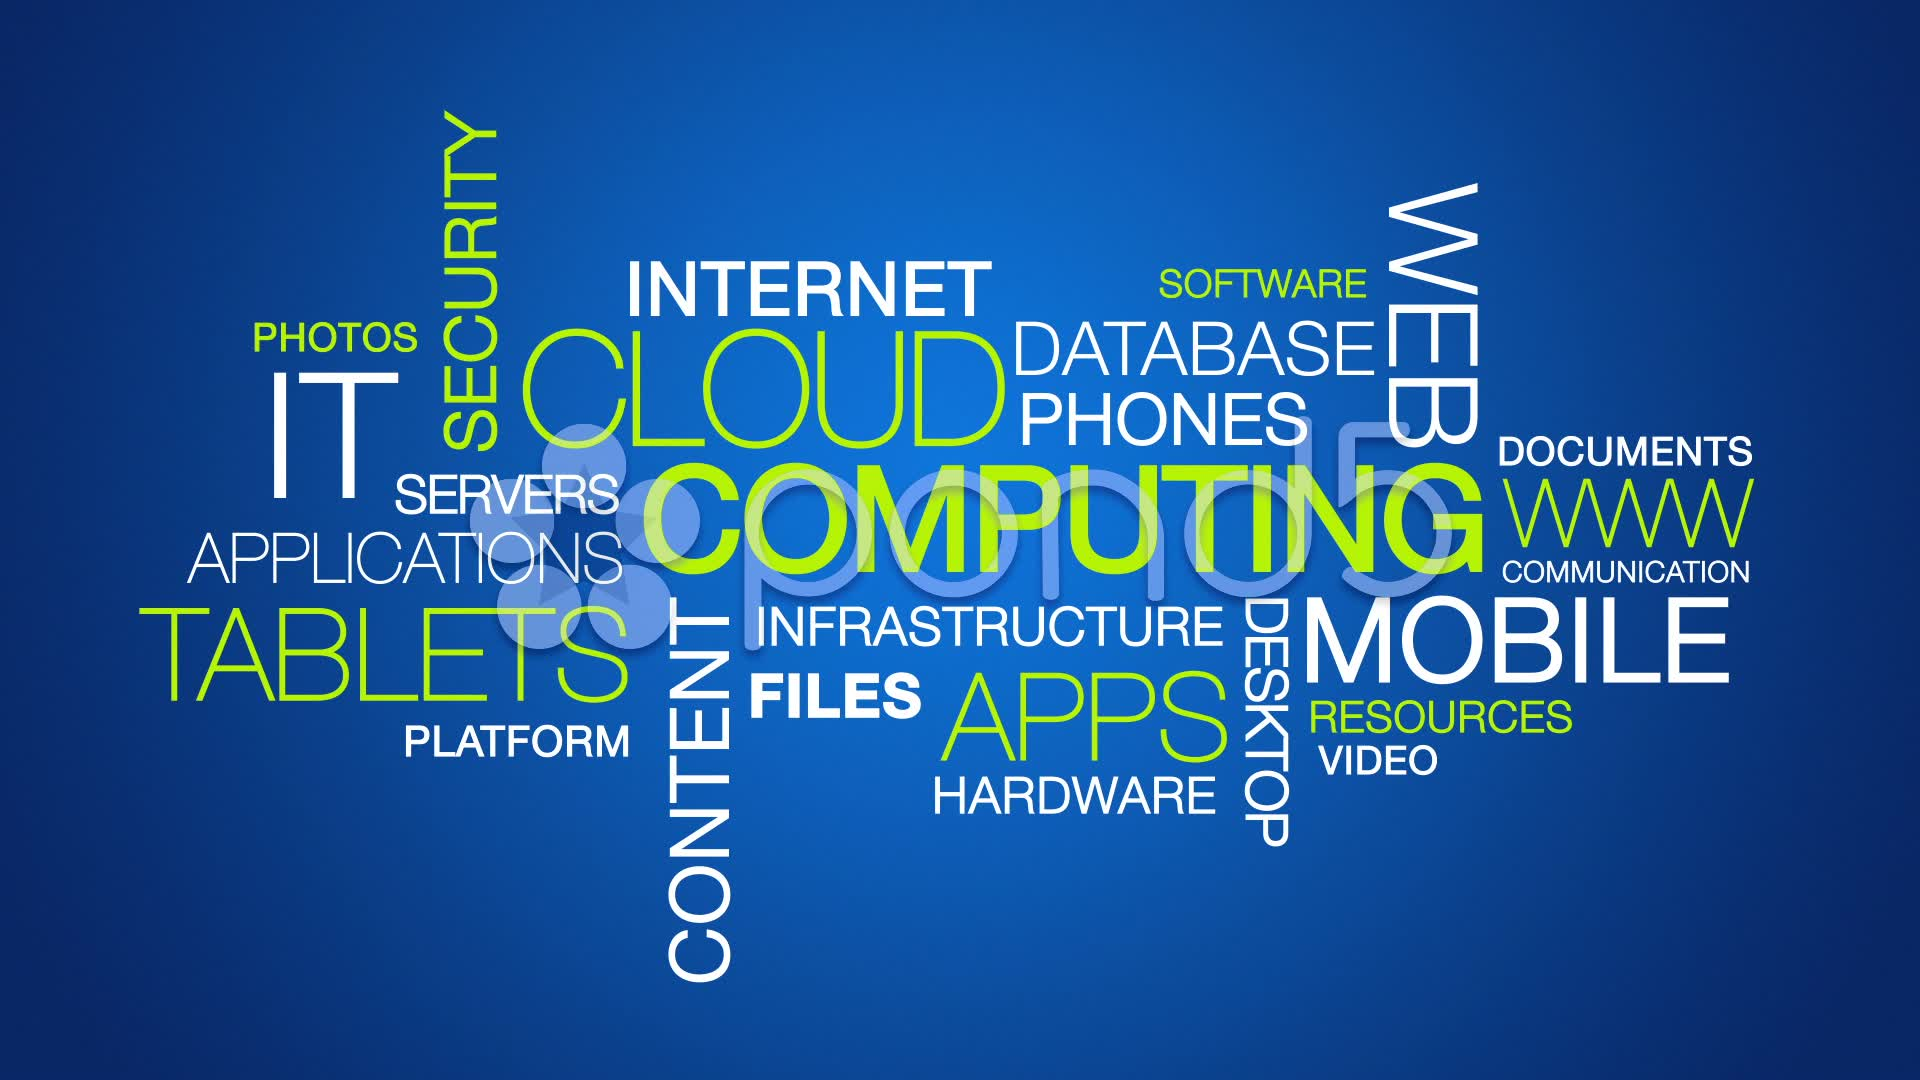 Cloud Computing Wallpaper